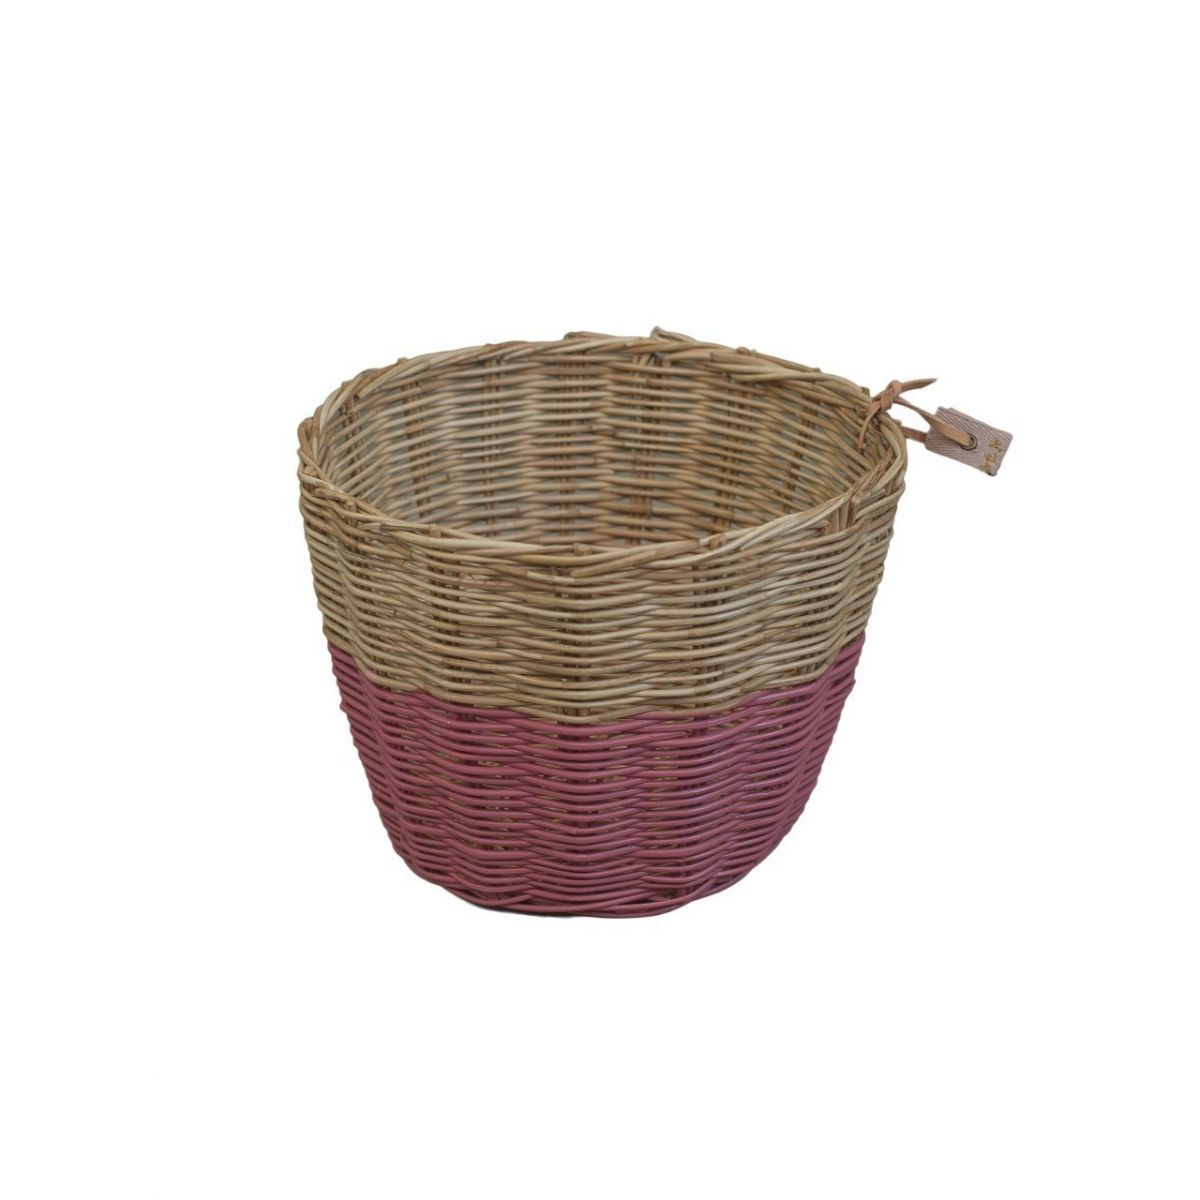 Numero 74 - Basket rattan rose - 1